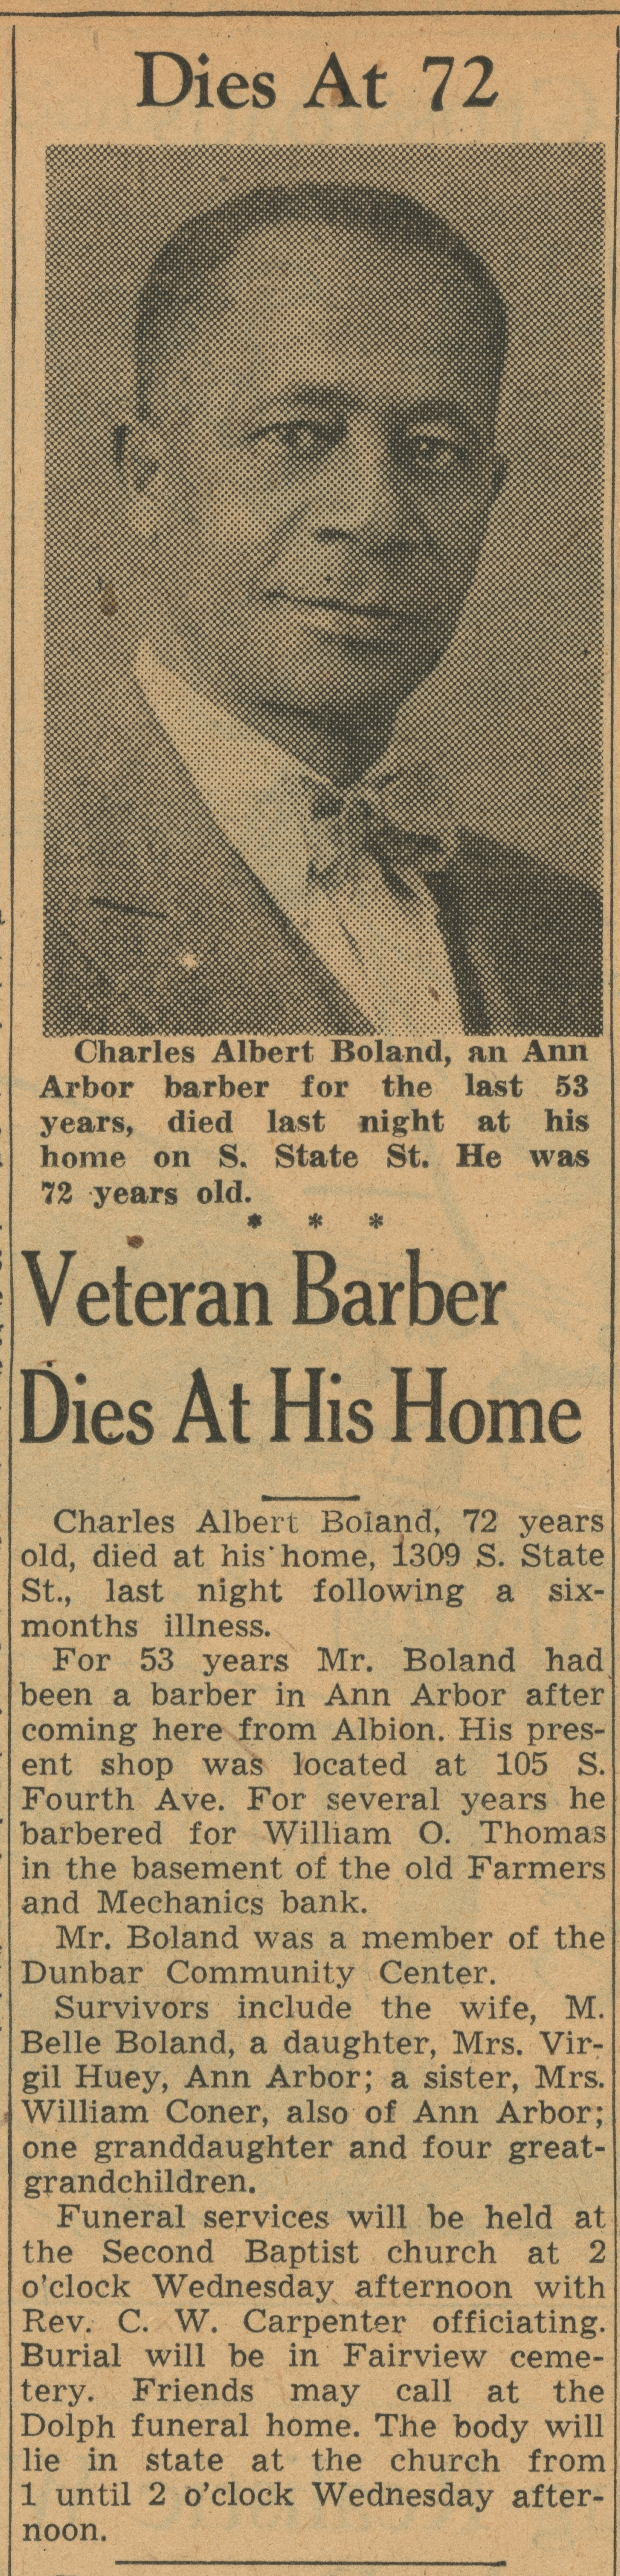 Veteran Barber Dies At His Home image